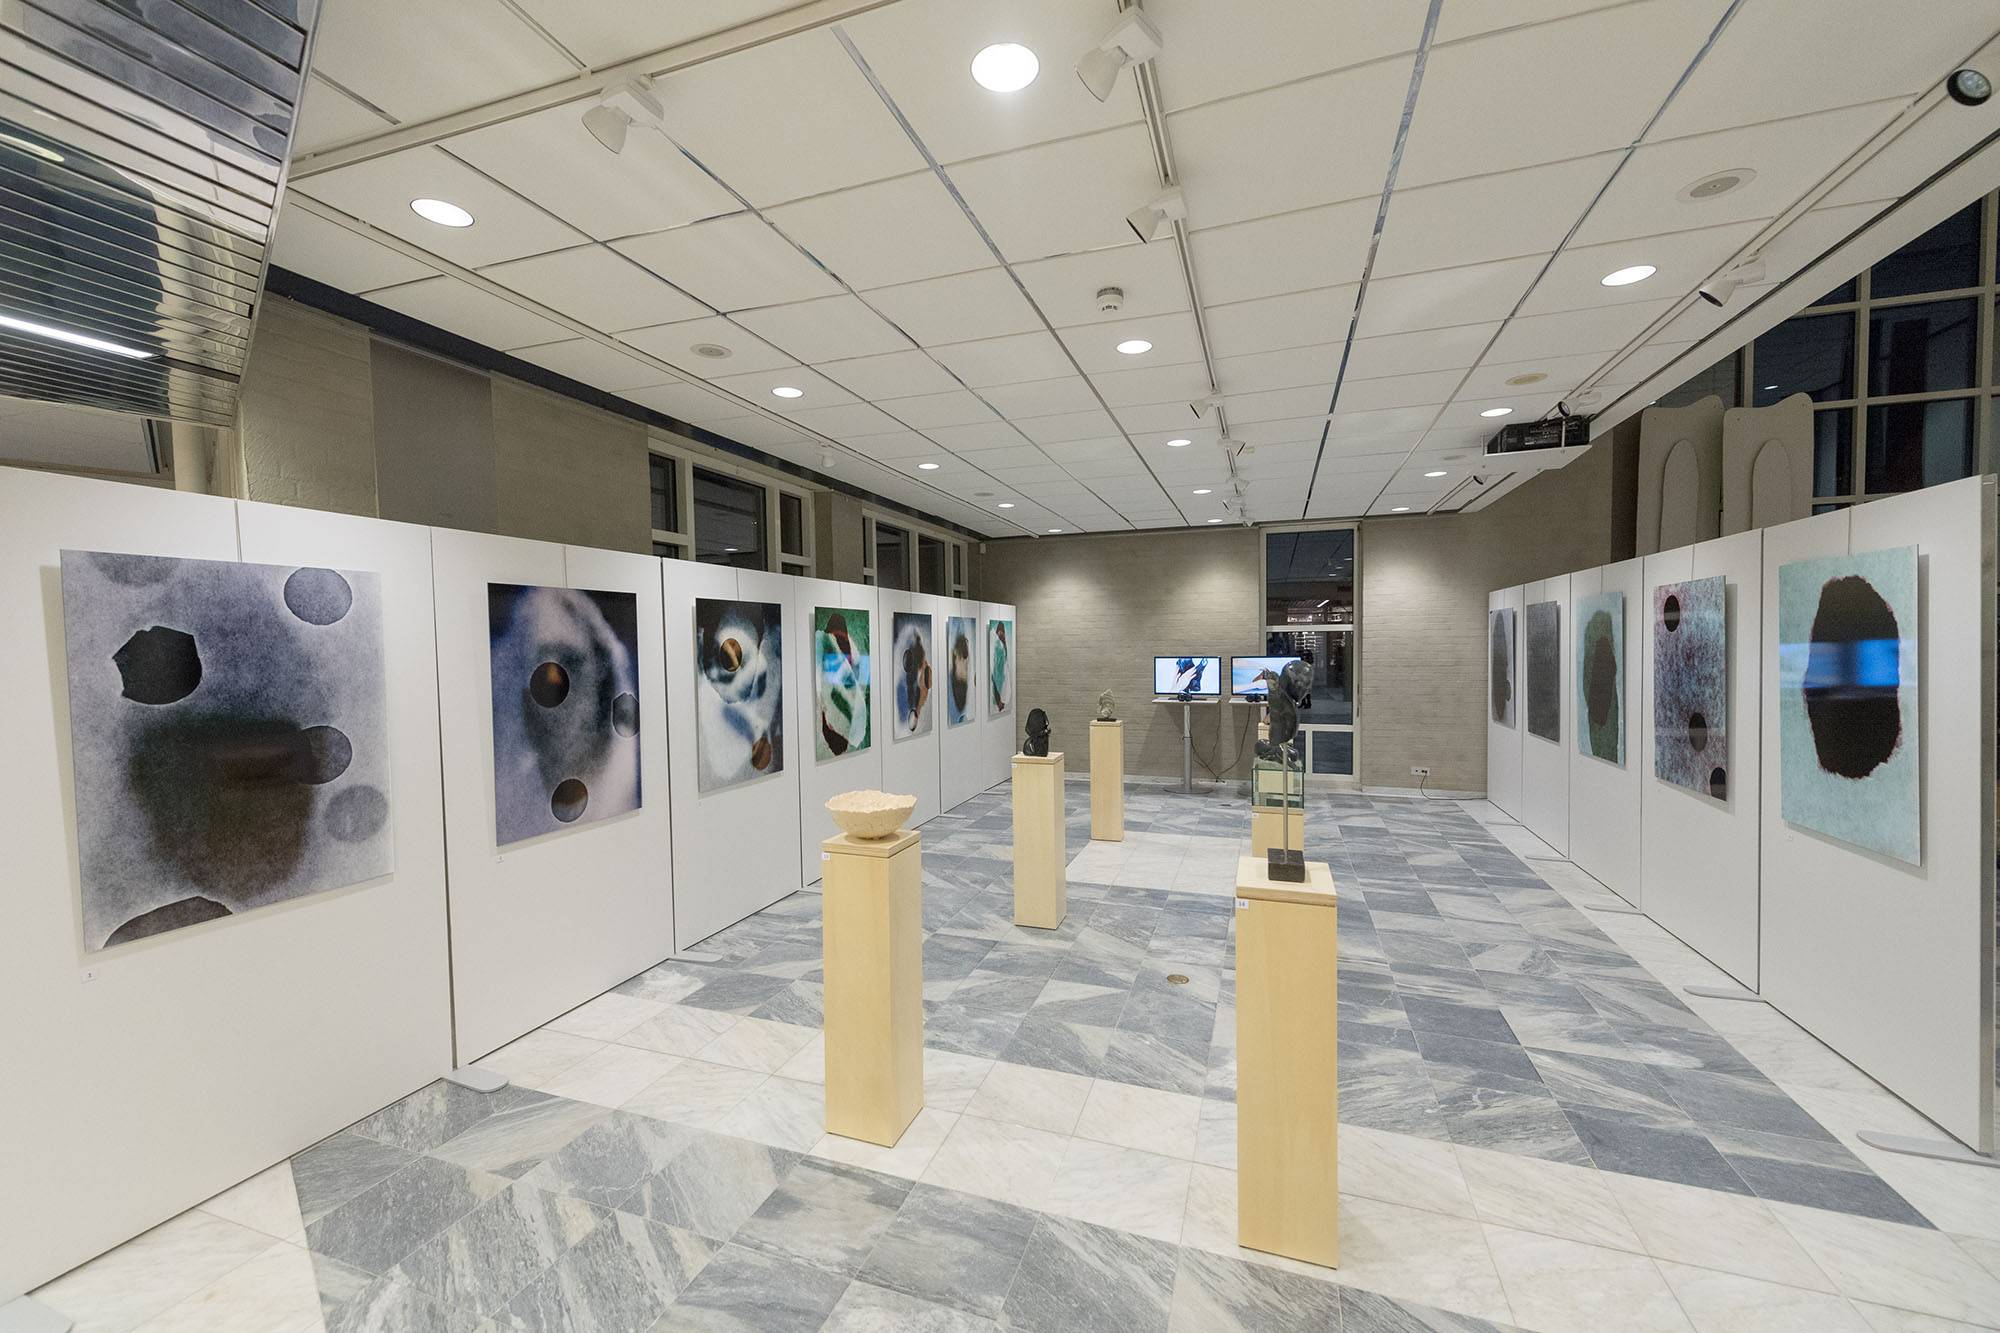 Impression Exhibition The blind spot, municipality house Goirle, March 2018.